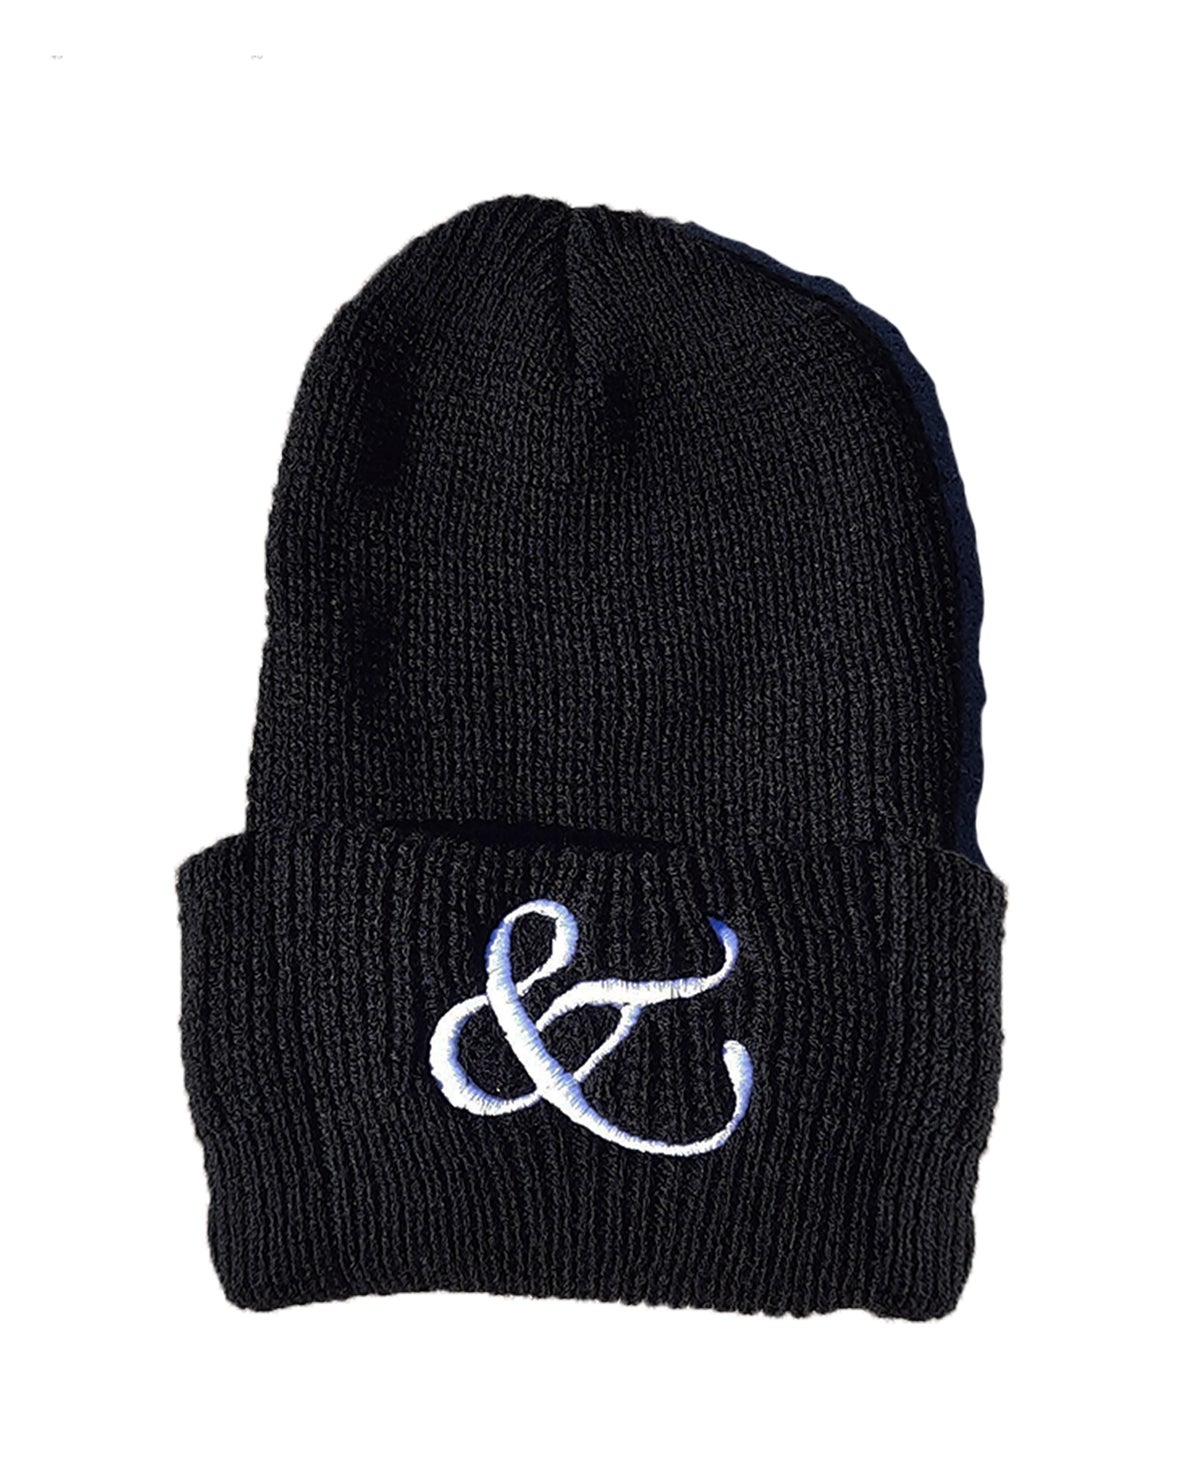 Image of Ampersand Ski-Mask